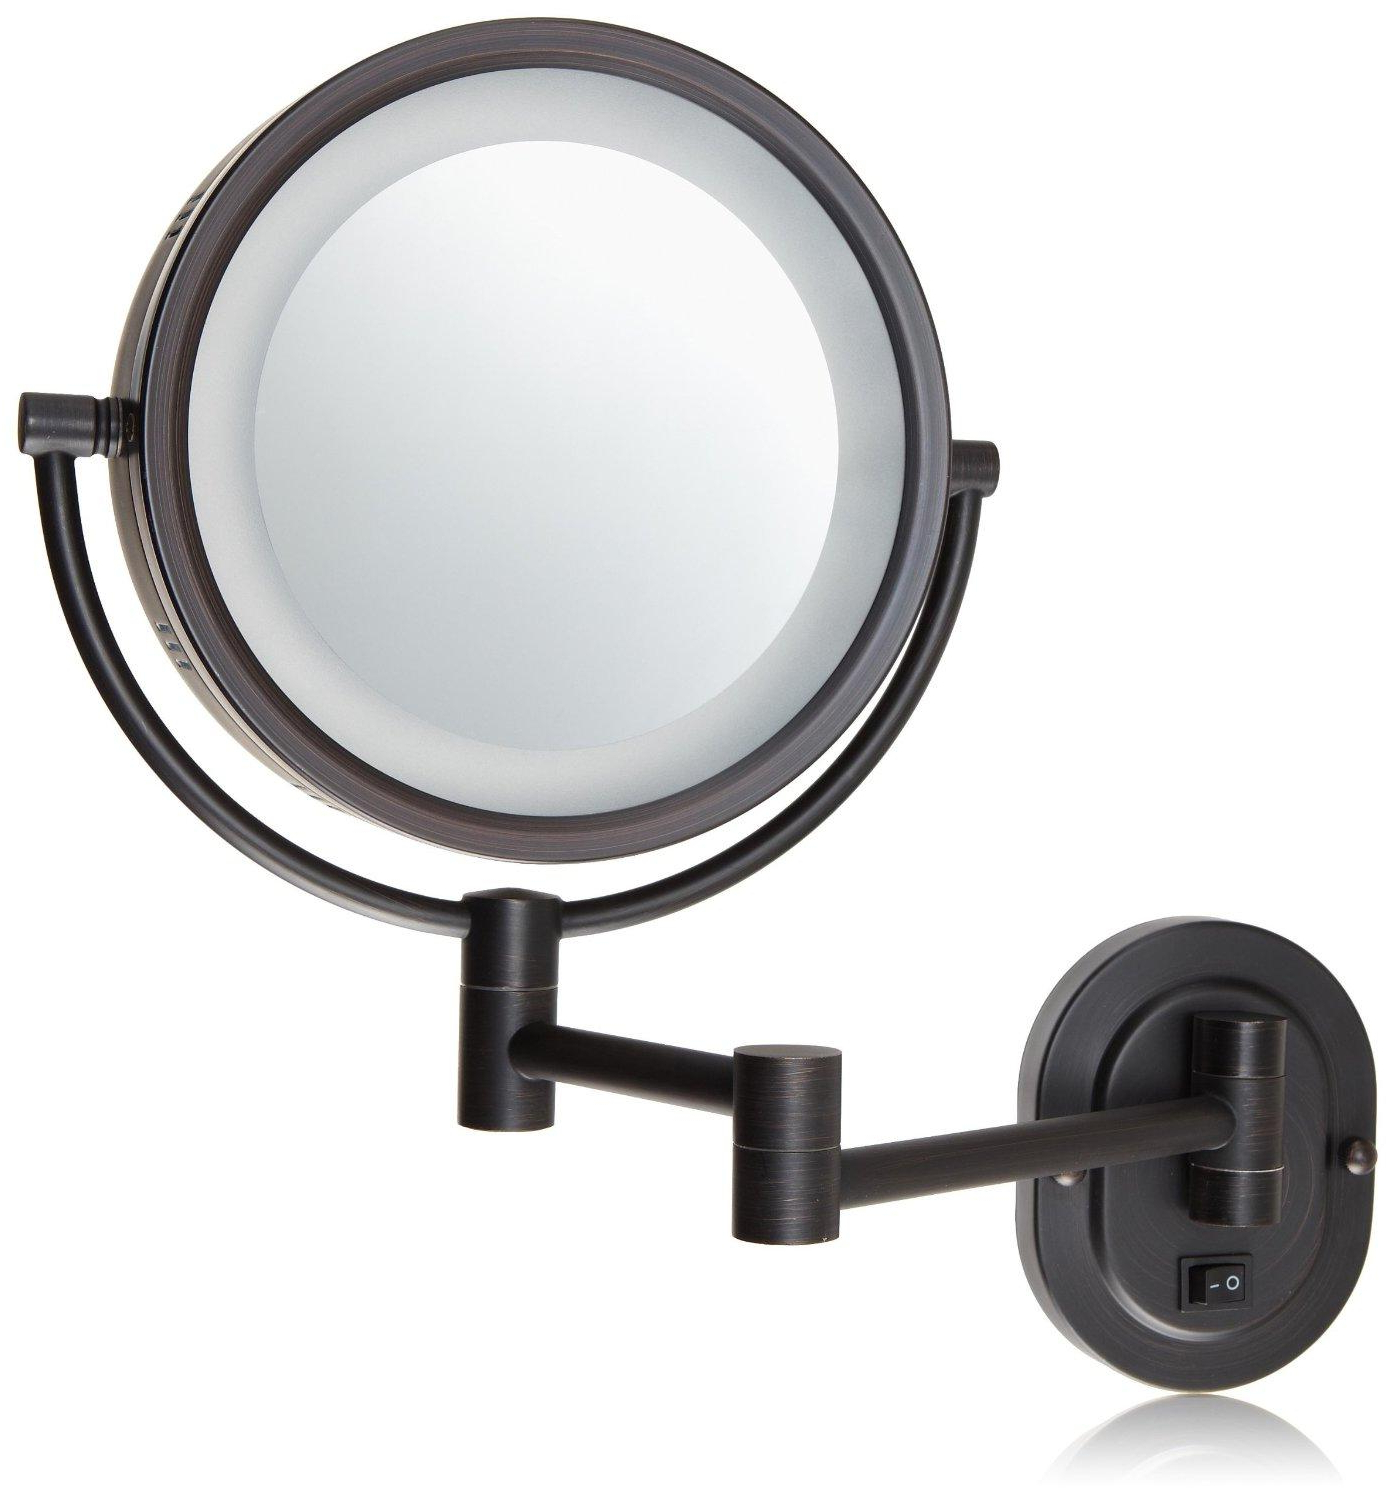 Magnifying Wall Mirrors For Bathroom With Regard To Current Jerdon Hl65Bzd 8 Inch Lighted Direct Wire Wall Mount Makeup Mirror With 5X Magnification, Bronze Finish (Gallery 11 of 20)